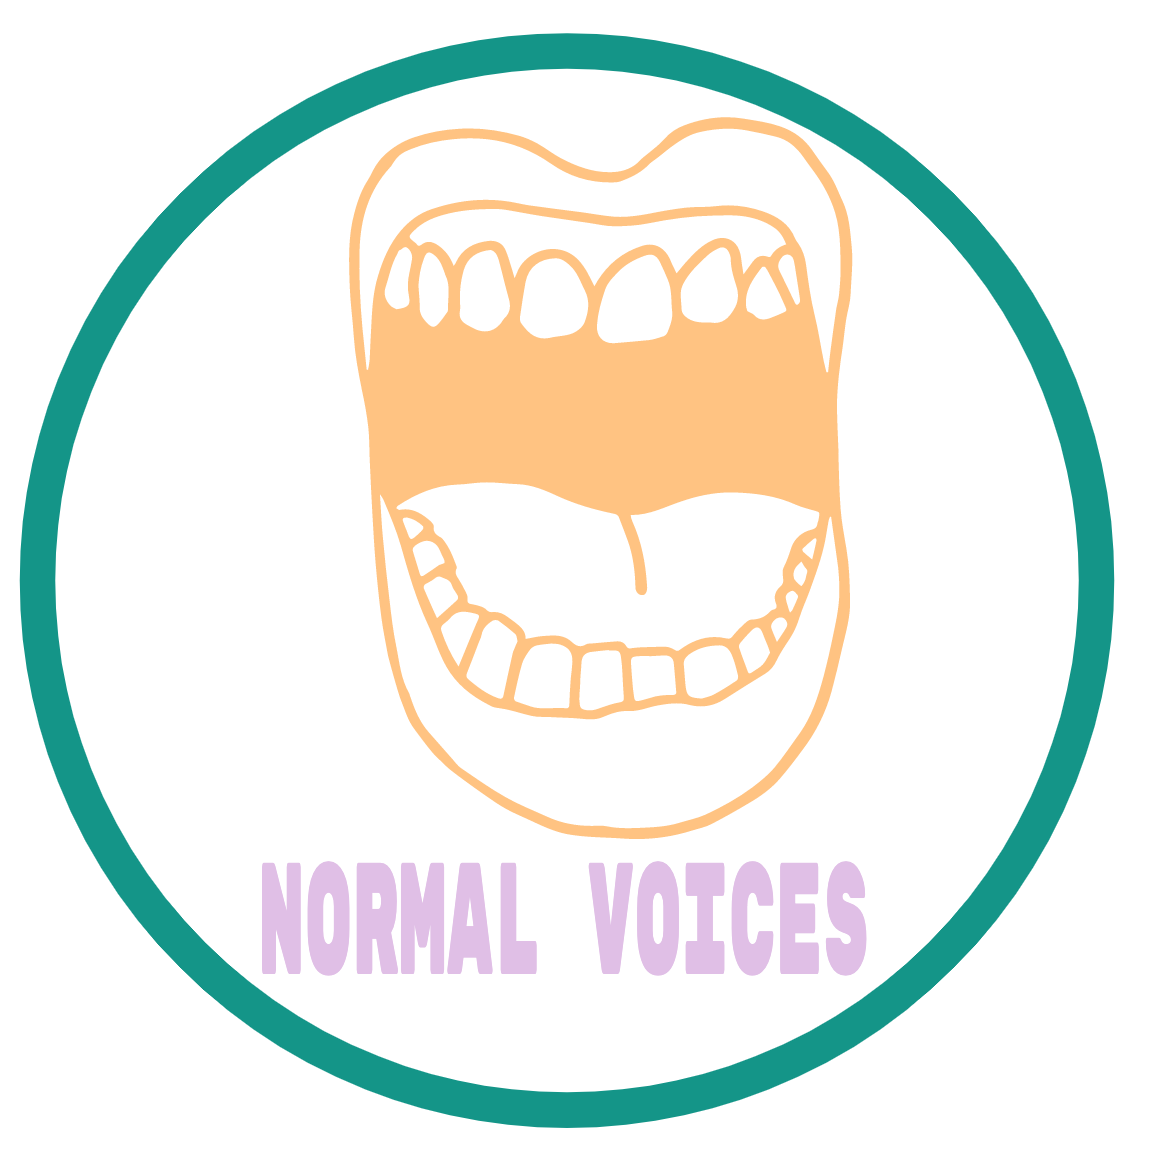 6-Normal-voices